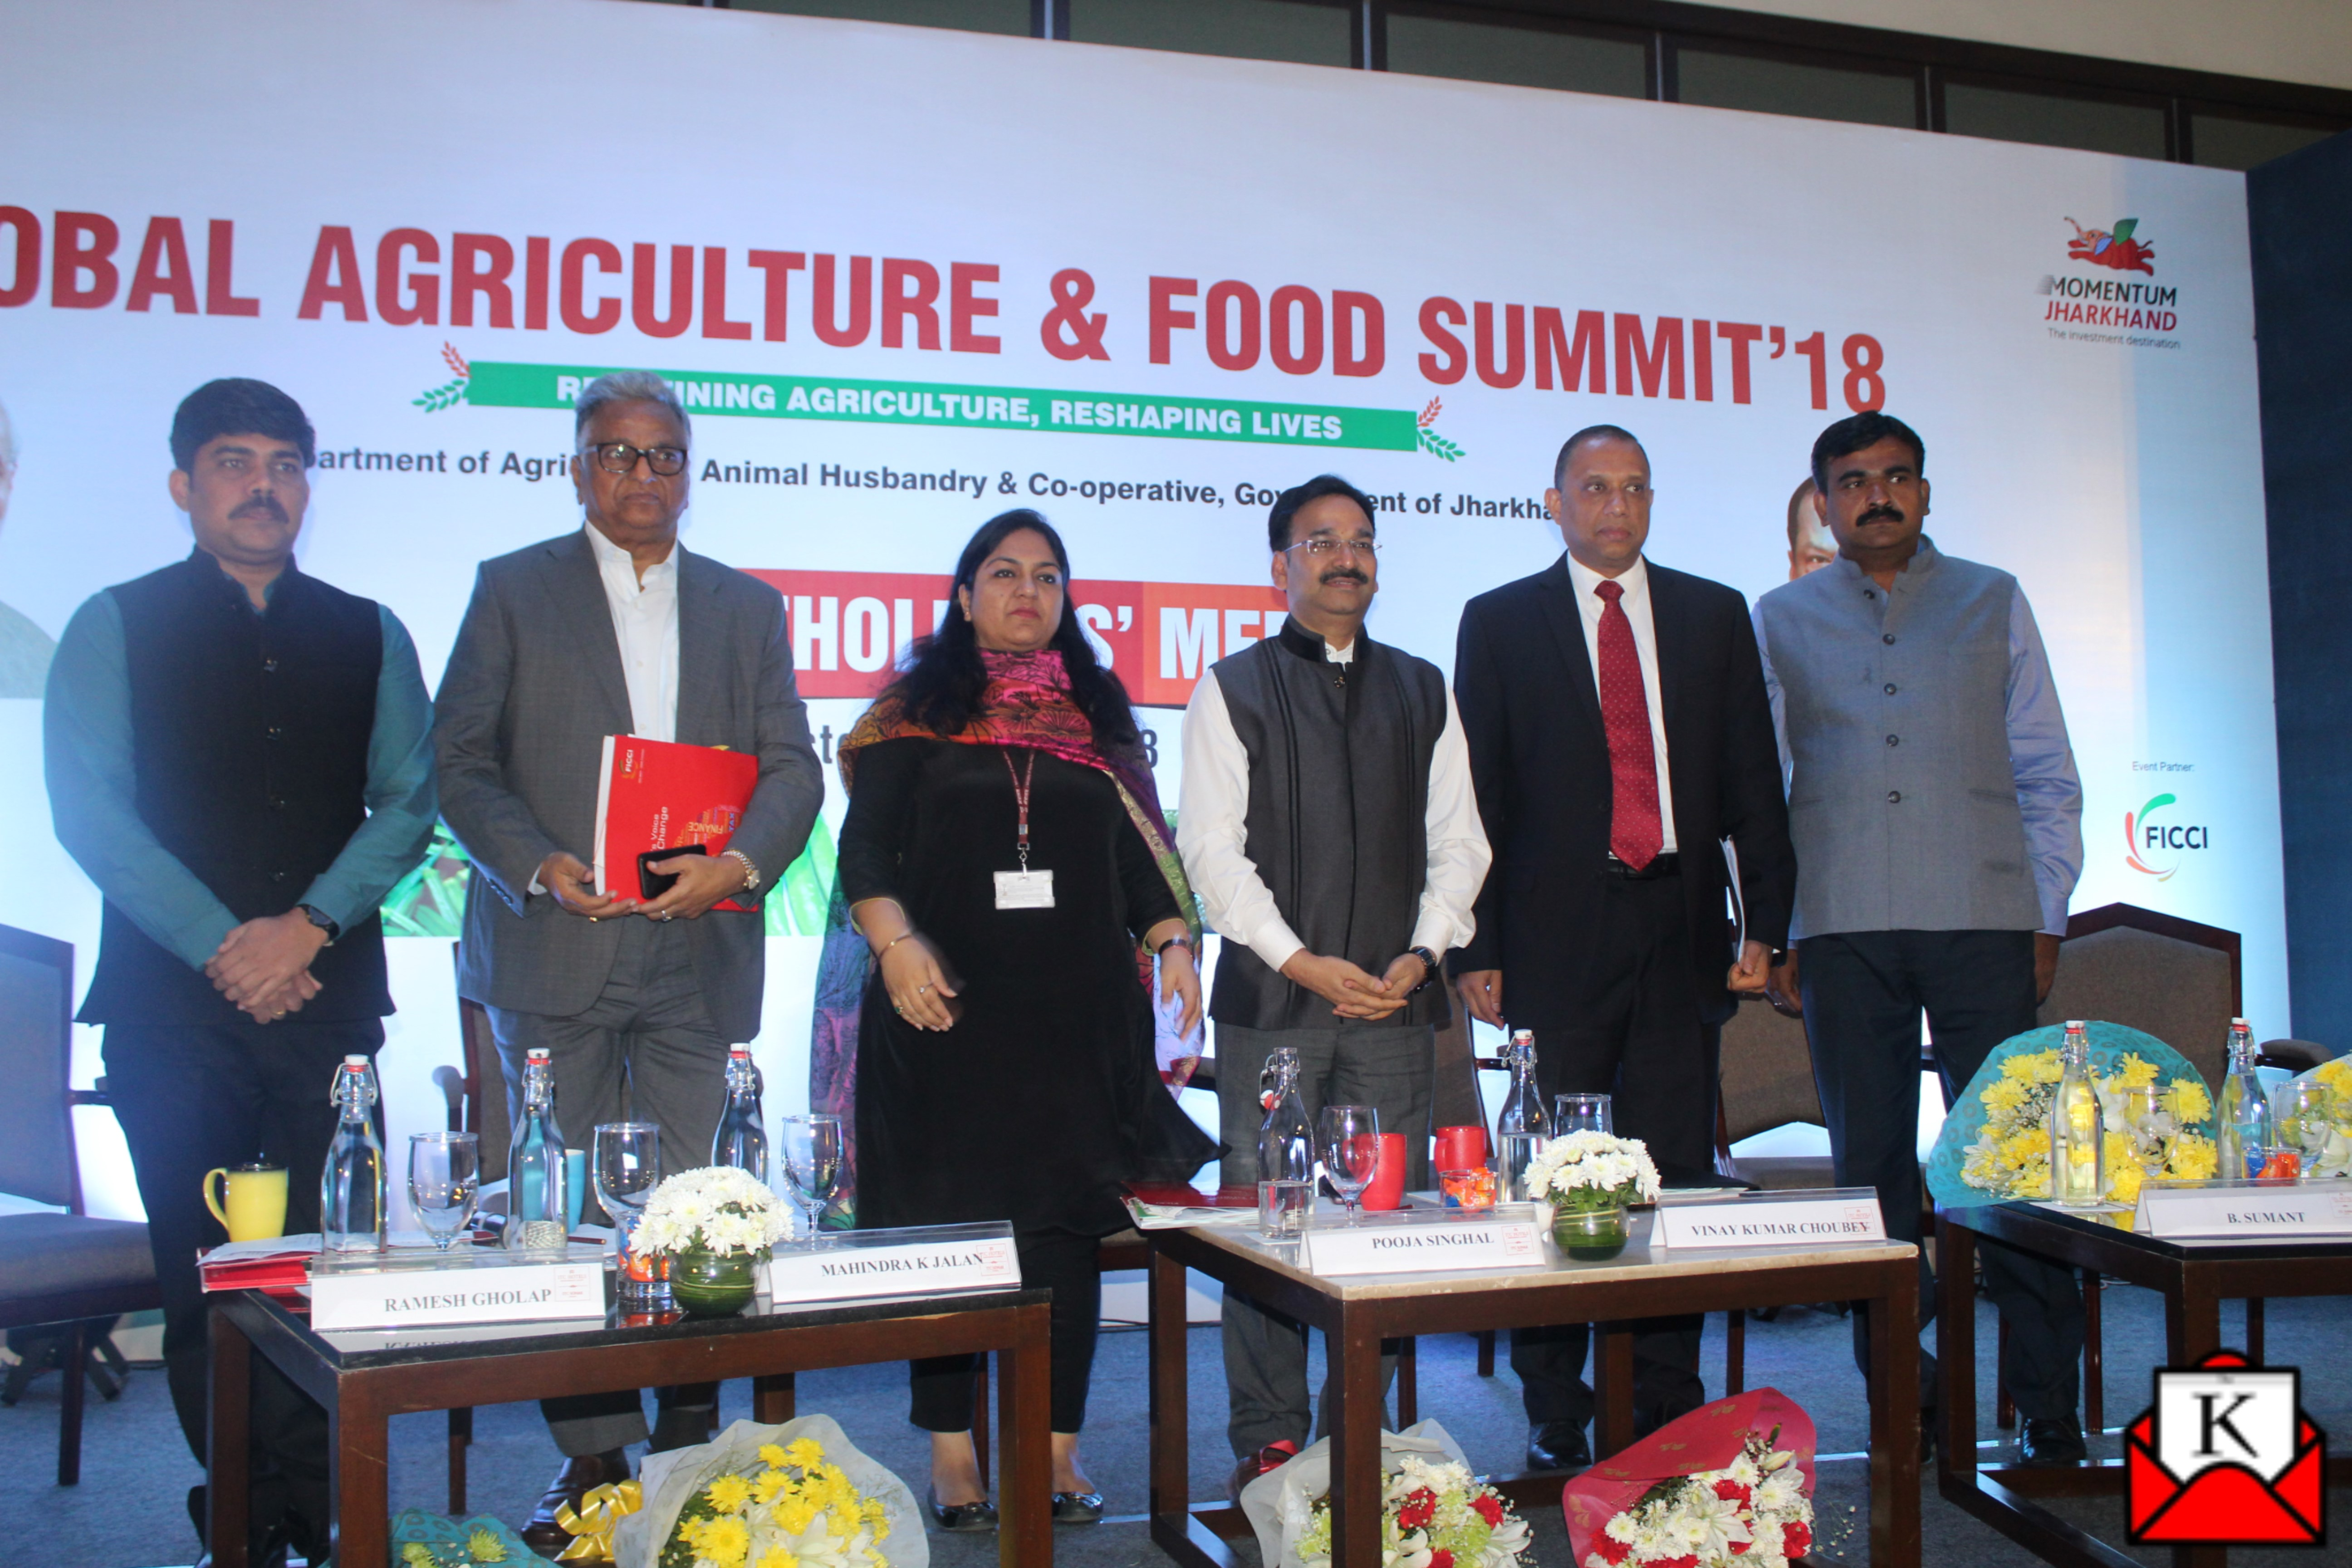 Roadshow by Government of Jharkhand to Promote Global Agriculture and Food Summit 2018